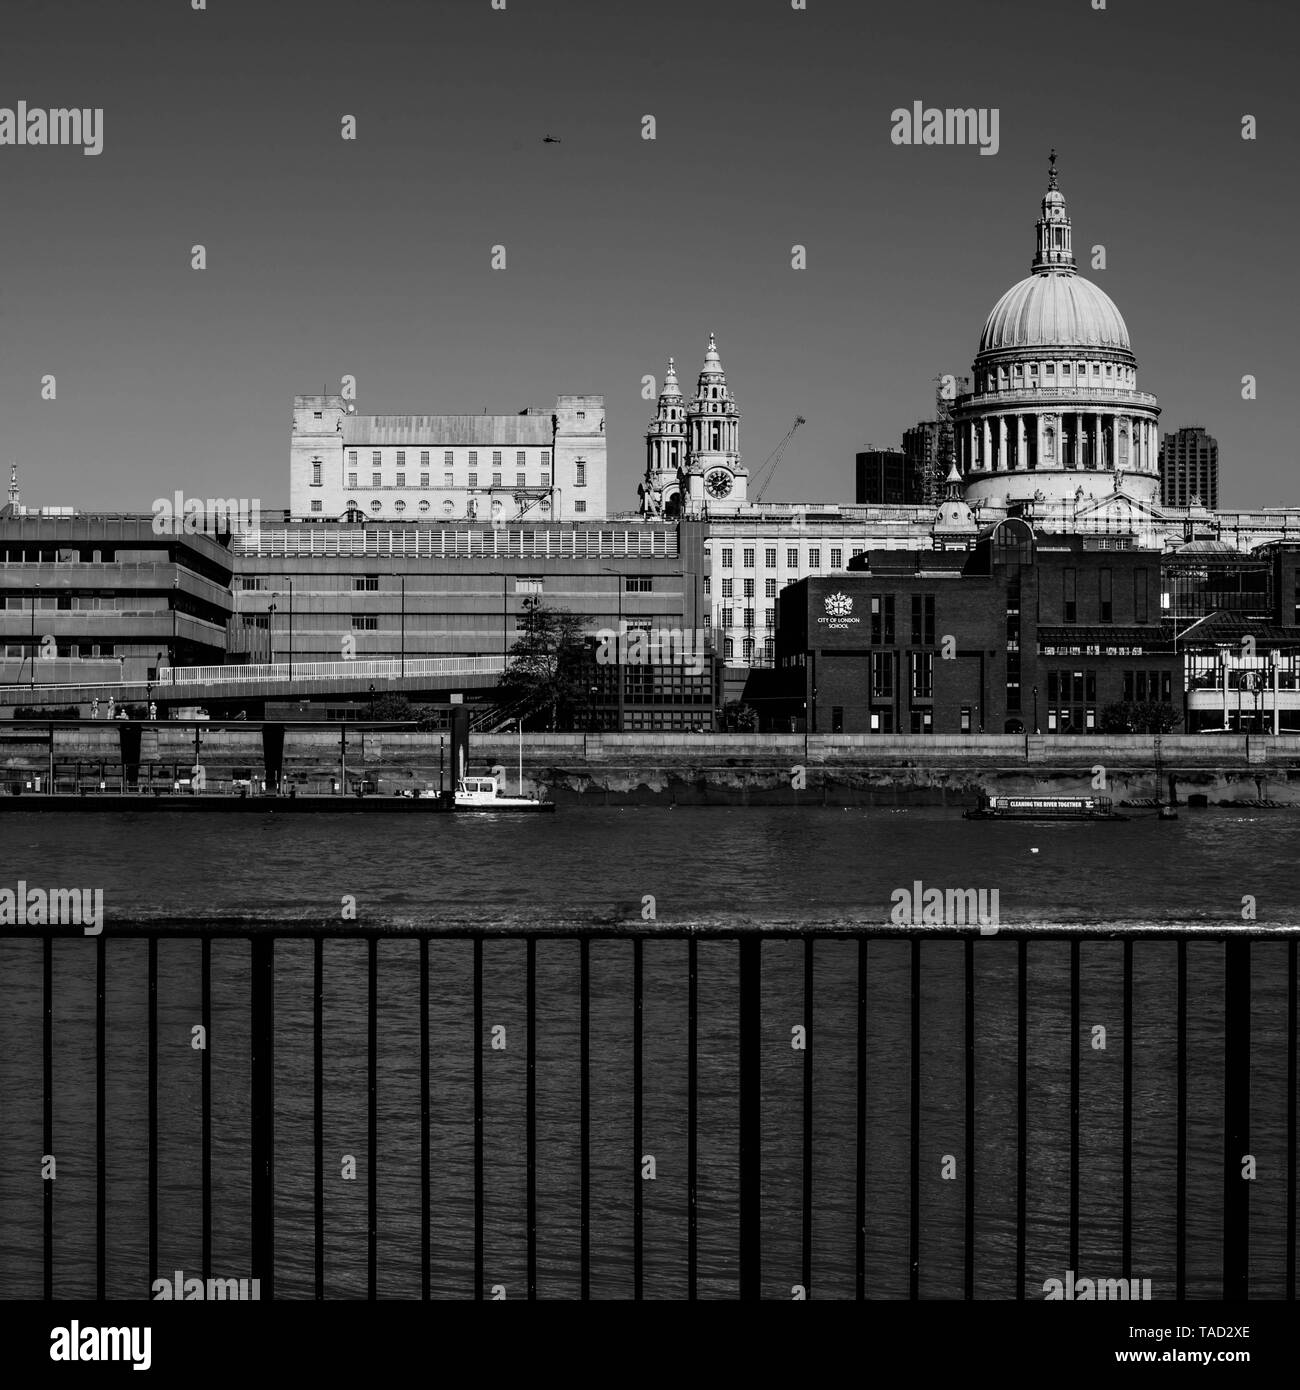 St. Pauls Catherdral London Looking Across the River Thames - Stock Image